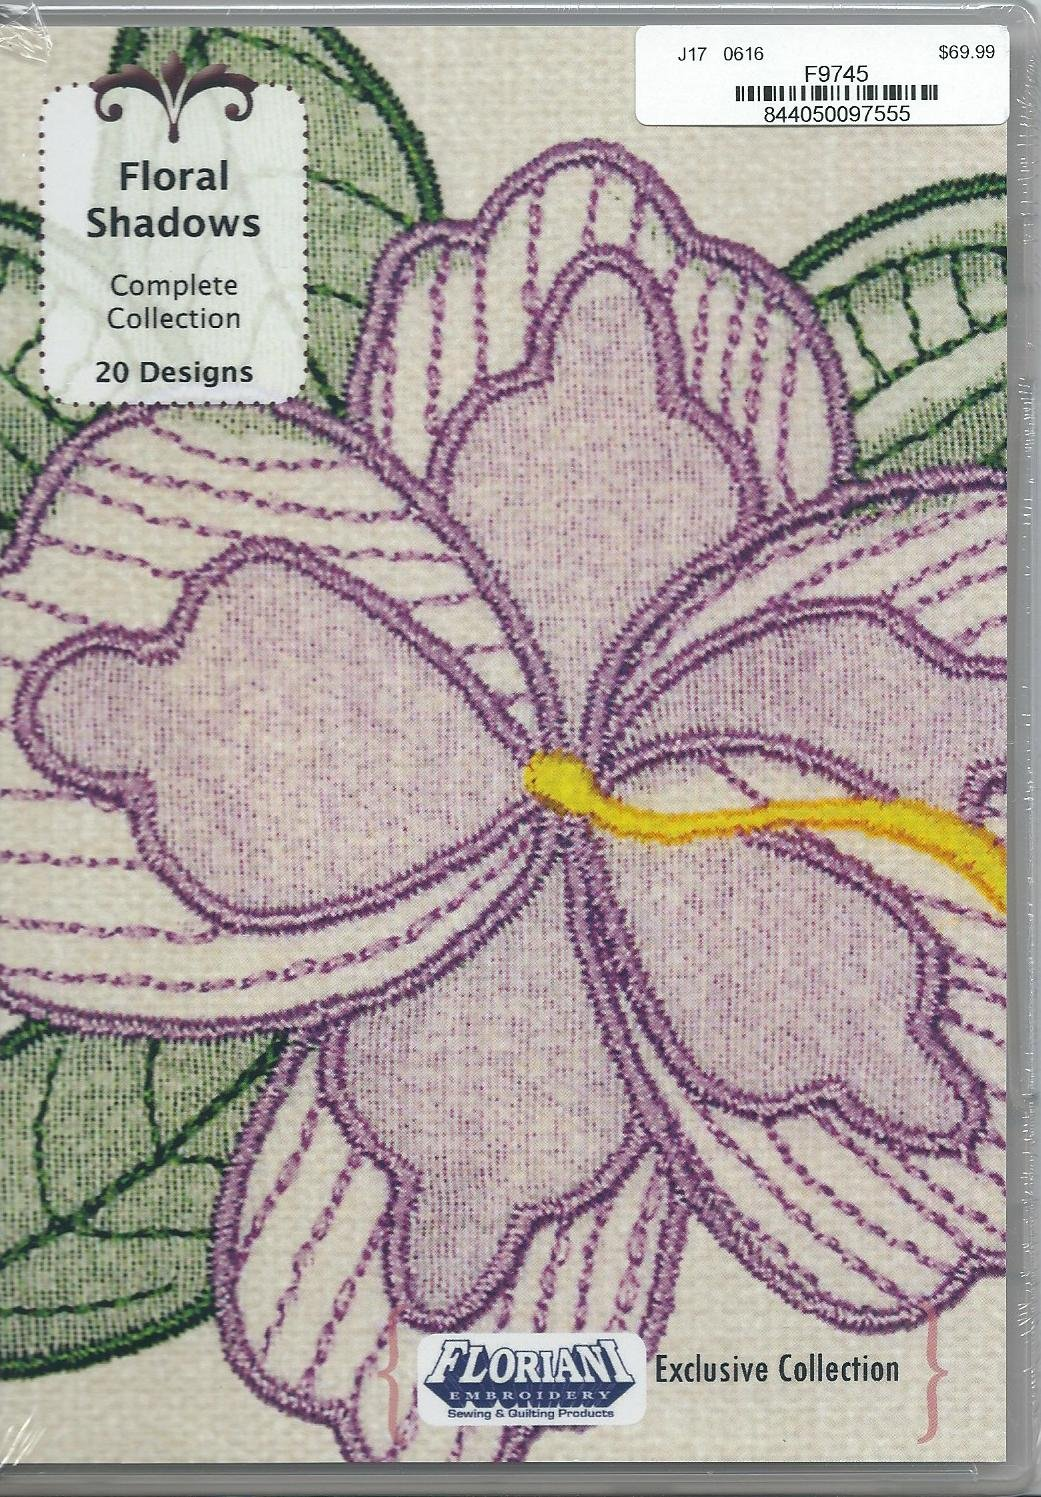 Floriani Embroidery Design Collection Floral Shadows